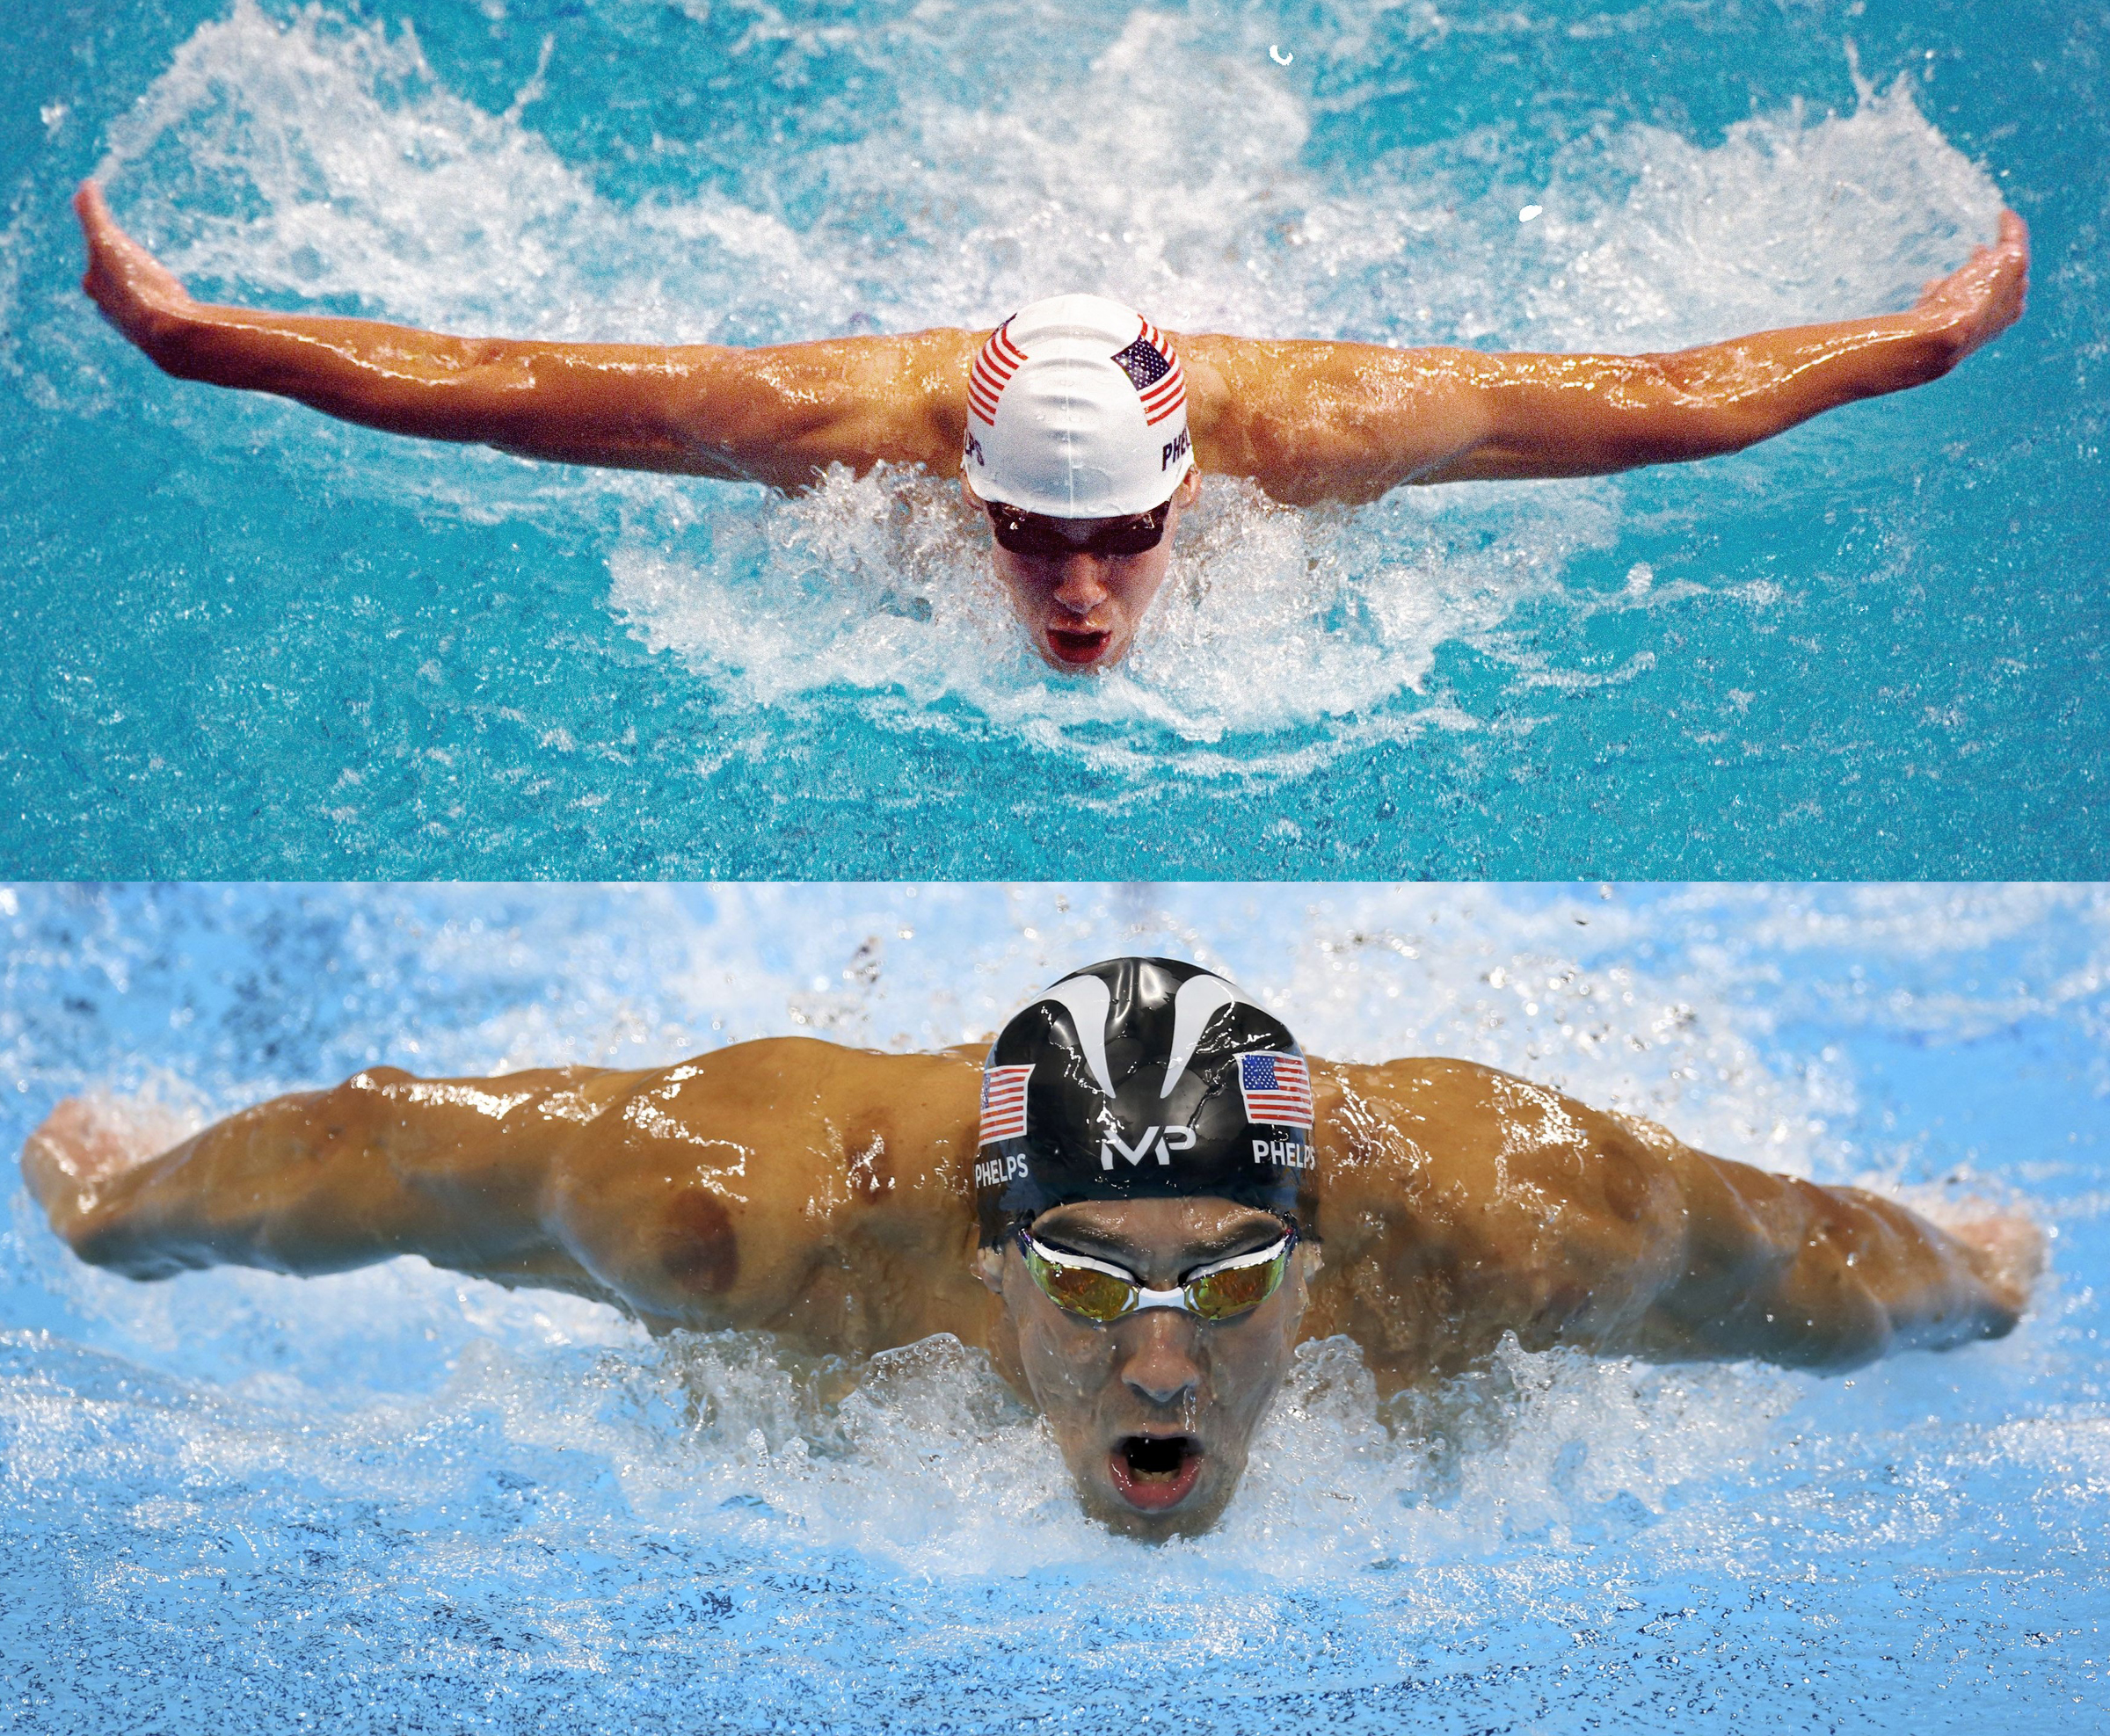 Michael Phelps swimming in 2000 and 2016